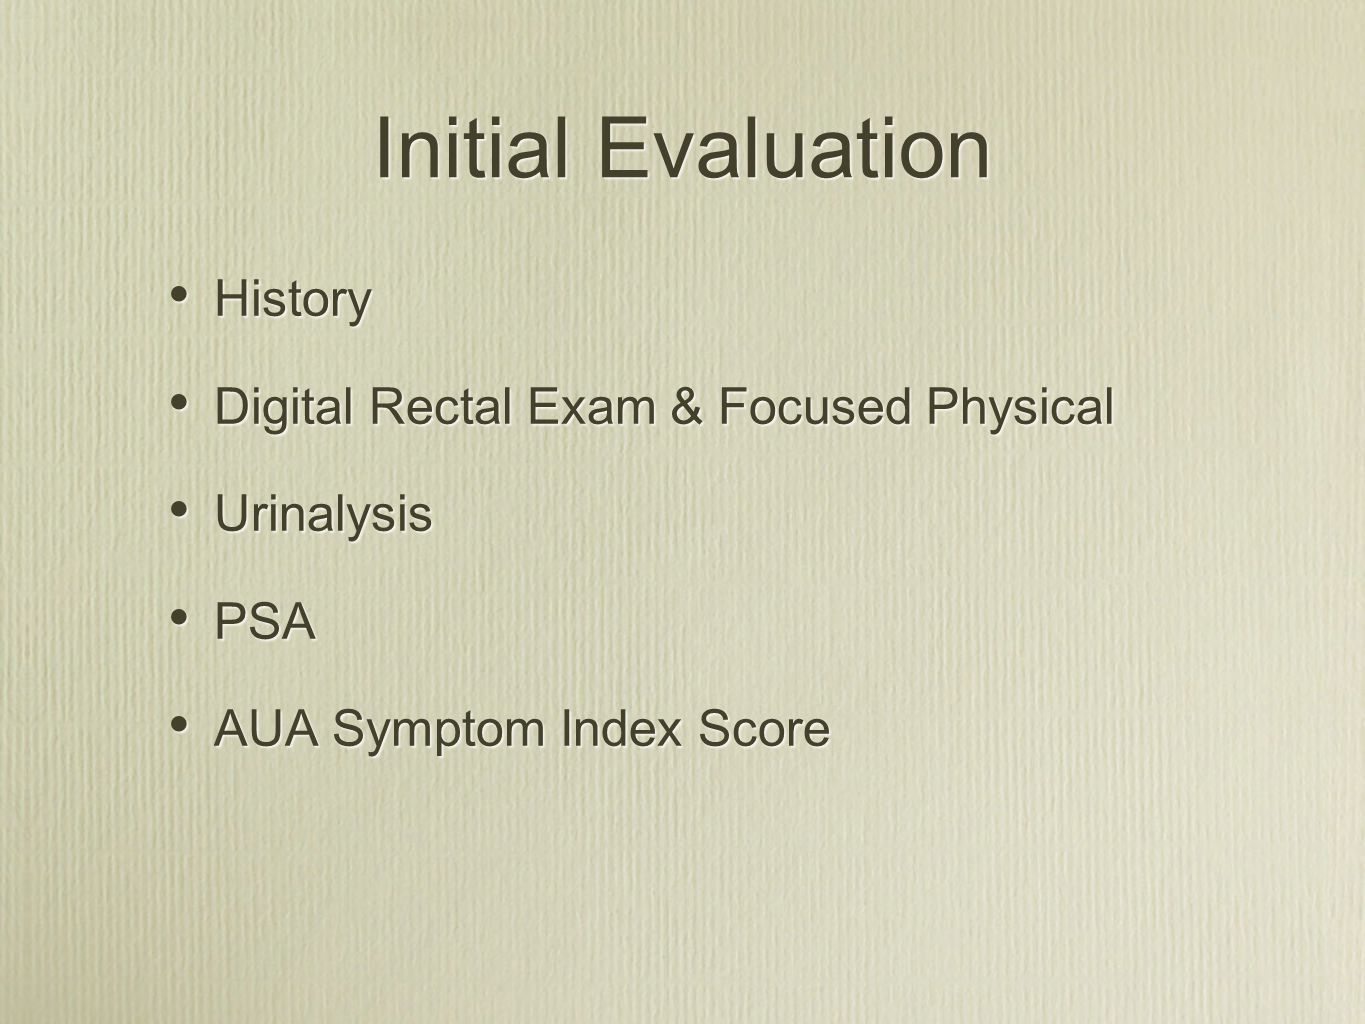 Initial Evaluation History Digital Rectal Exam & Focused Physical